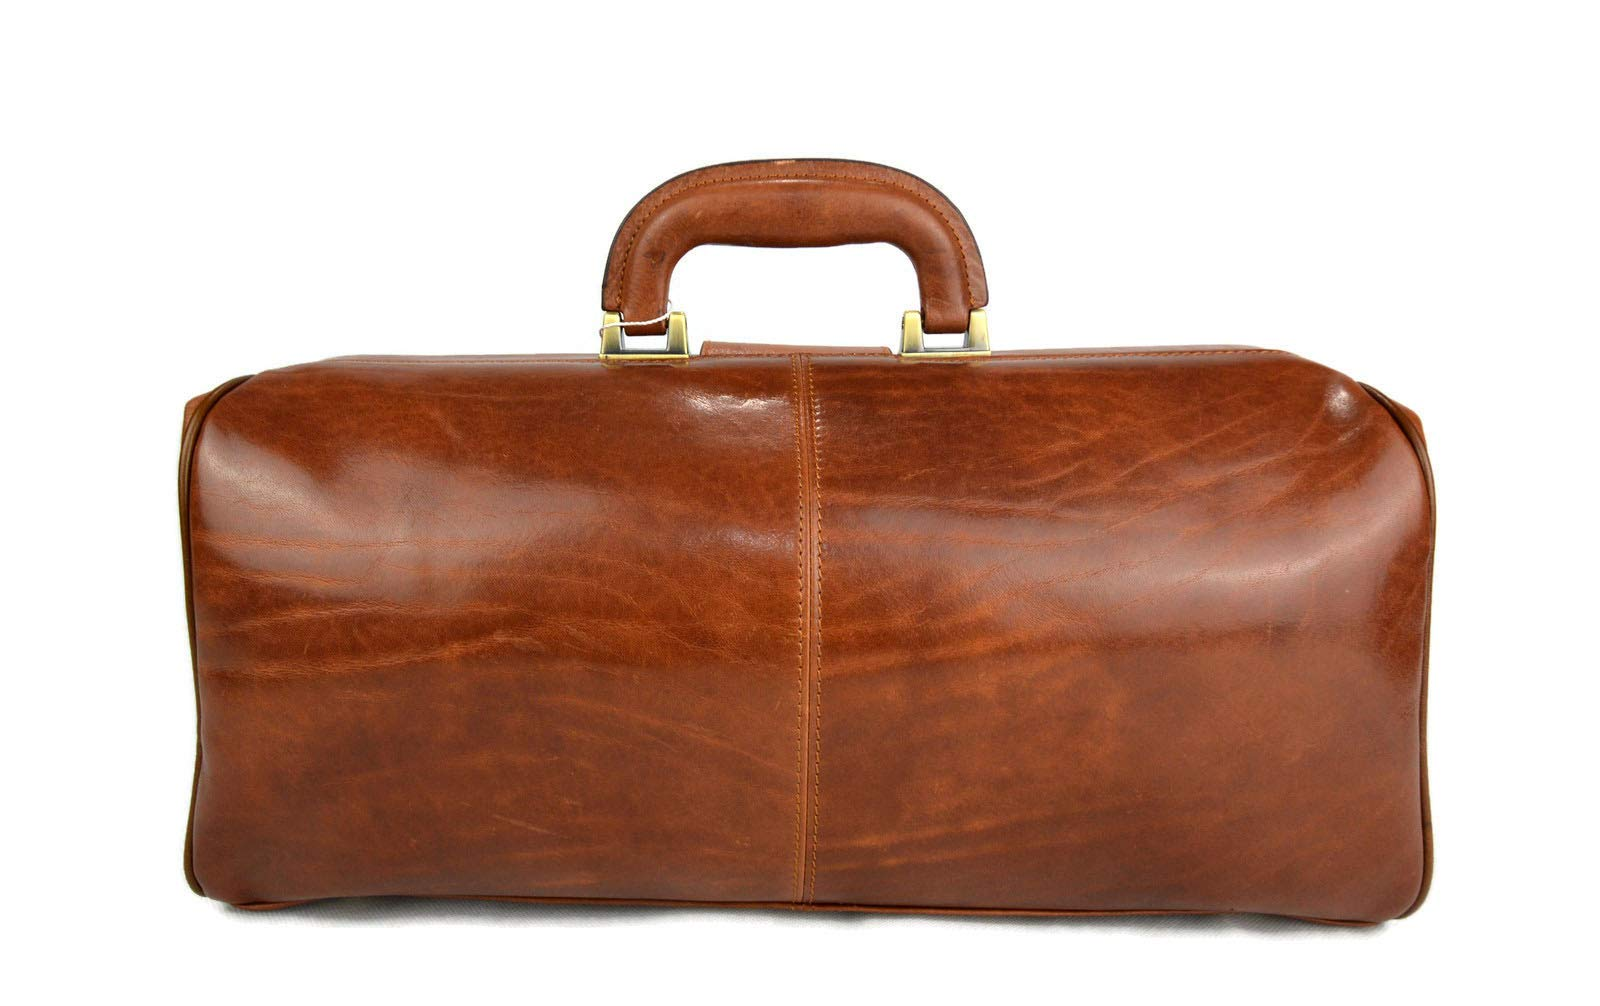 Leather doctor bag messenger handbag ladies men leatherbag briefcase vintage duffle bag brown made in Italy luxury bag travel bag weekender - handmade-bags